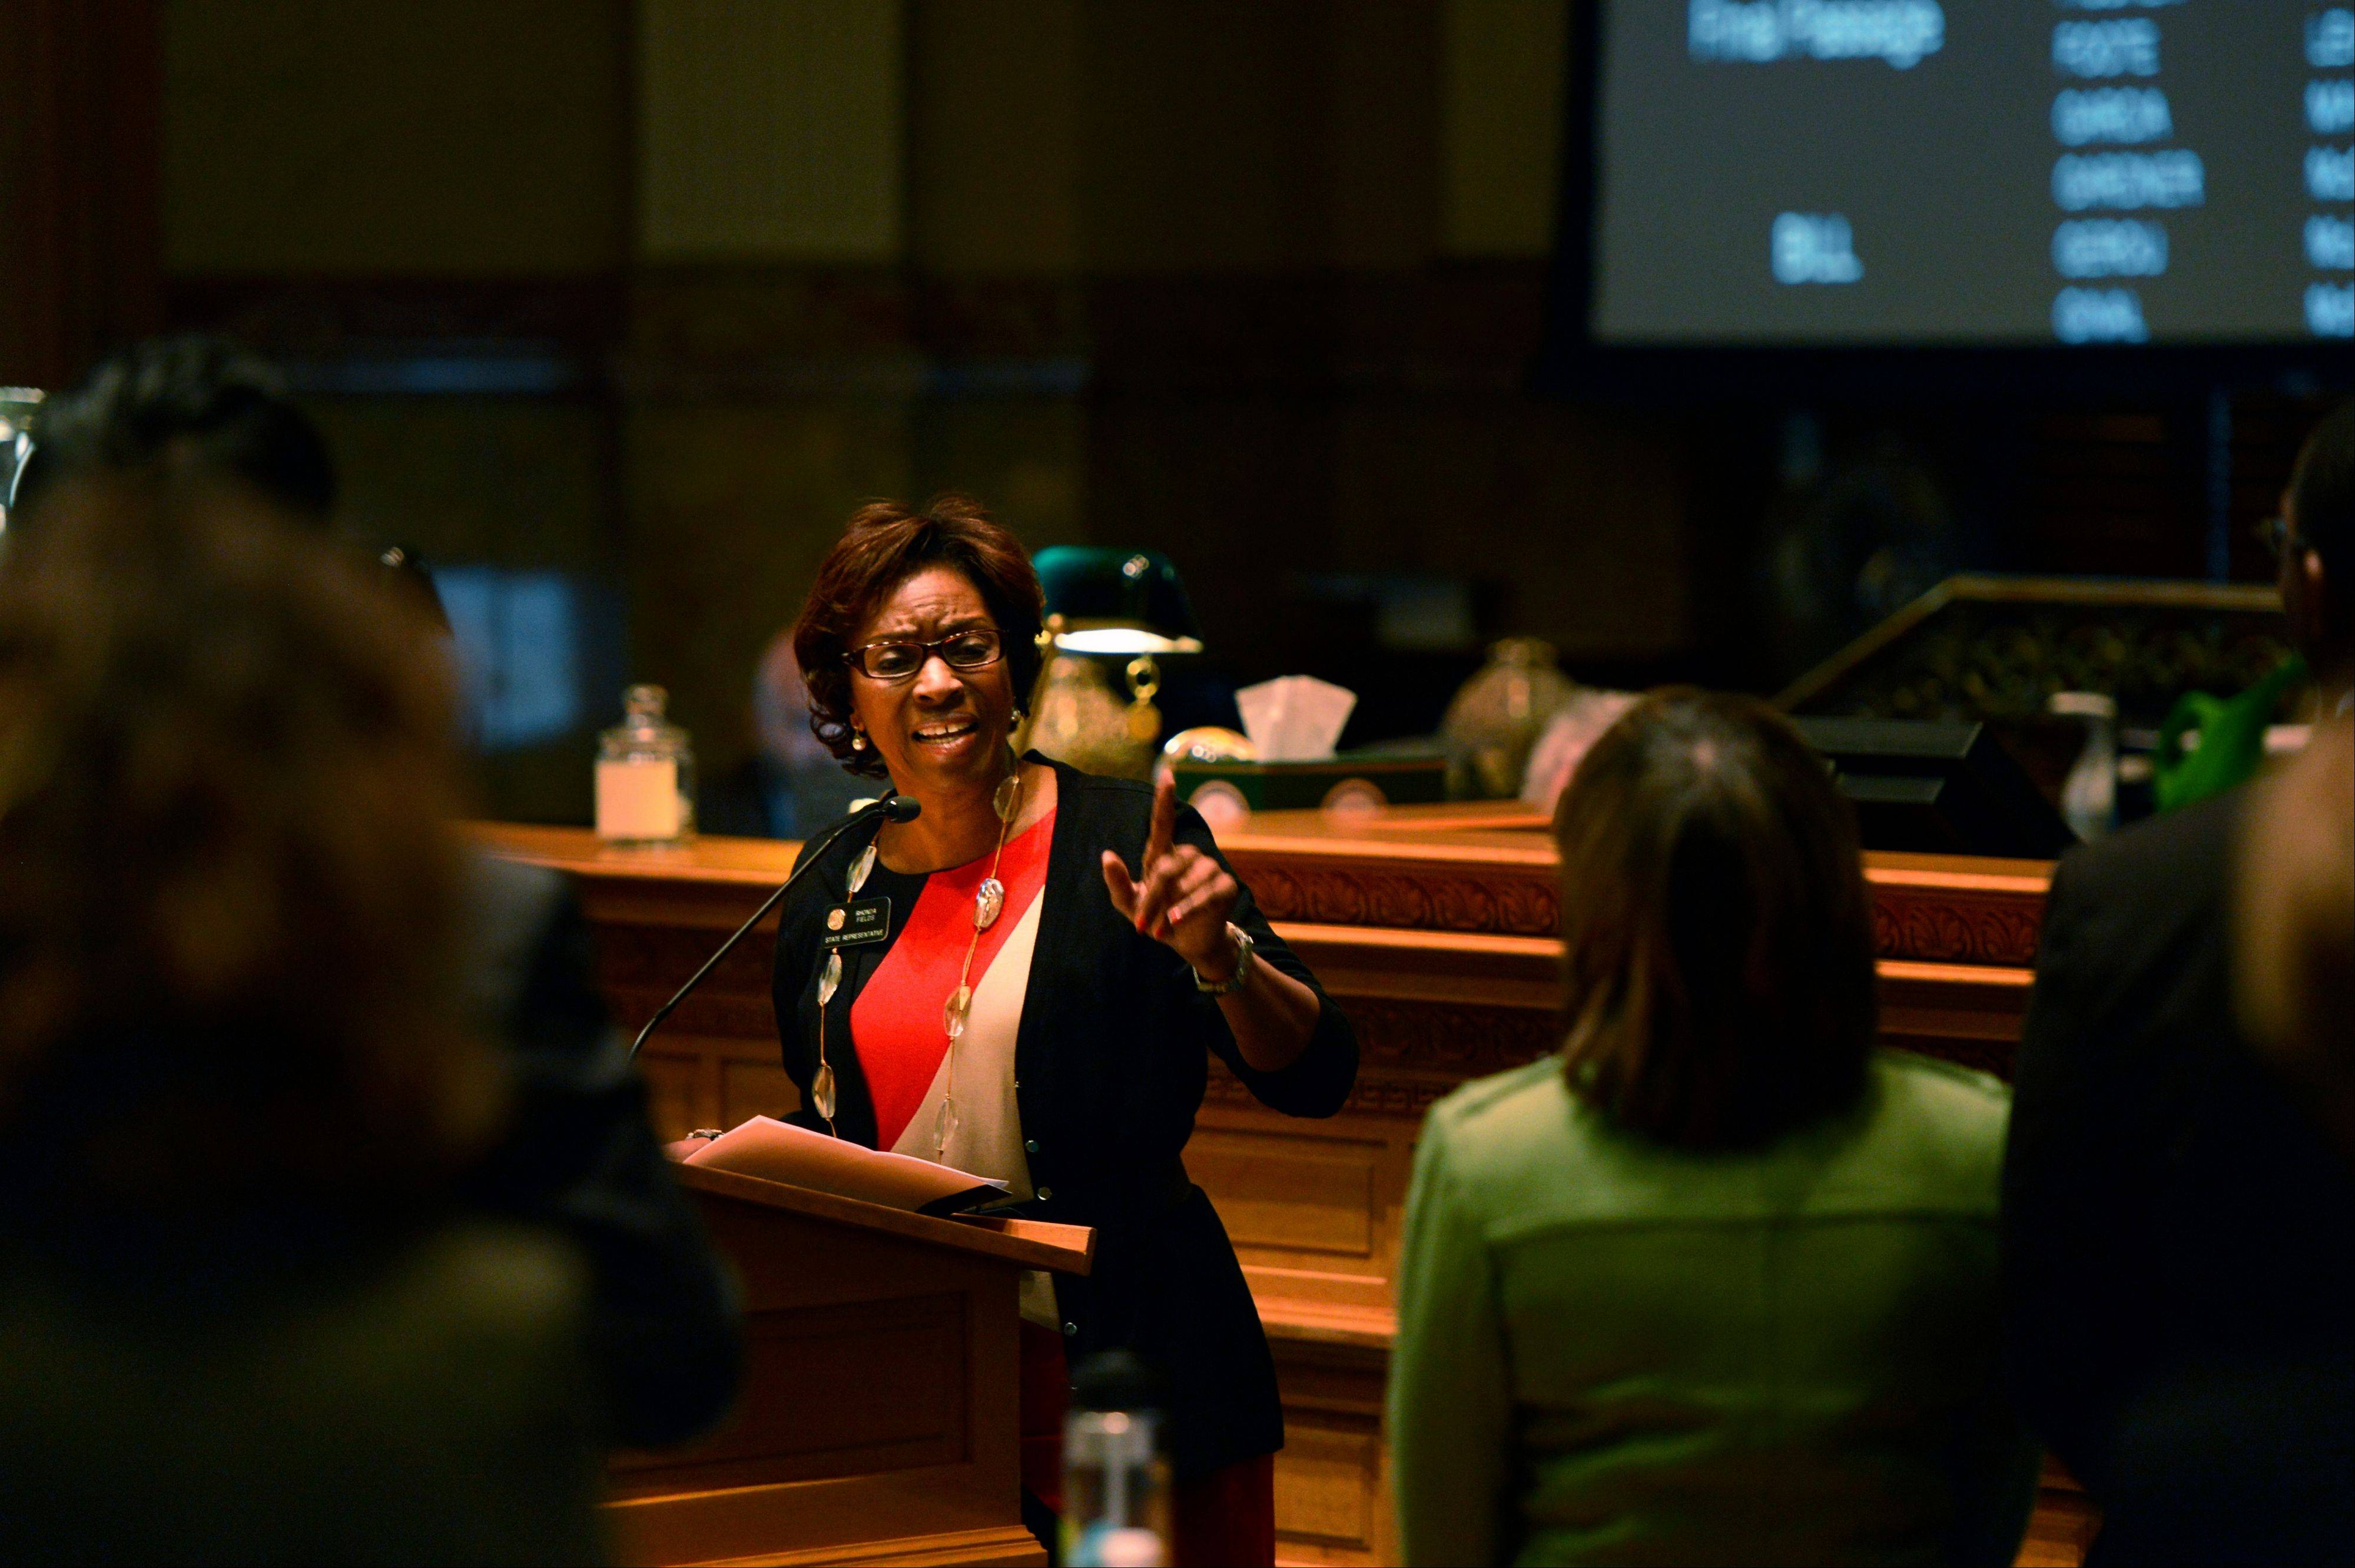 Rep. Rhonda Fields, D-Aurora, speaks before the Colorado House as they consider her bill, HB13-1224, that prohibits large capacity ammunition magazines at the State Capitol in Denver, Monday, Feb. 18, 2013. Colorado House Democrats passed new ammunition limits and expanded background checks as part of a package of bills responding to recent mass shootings.